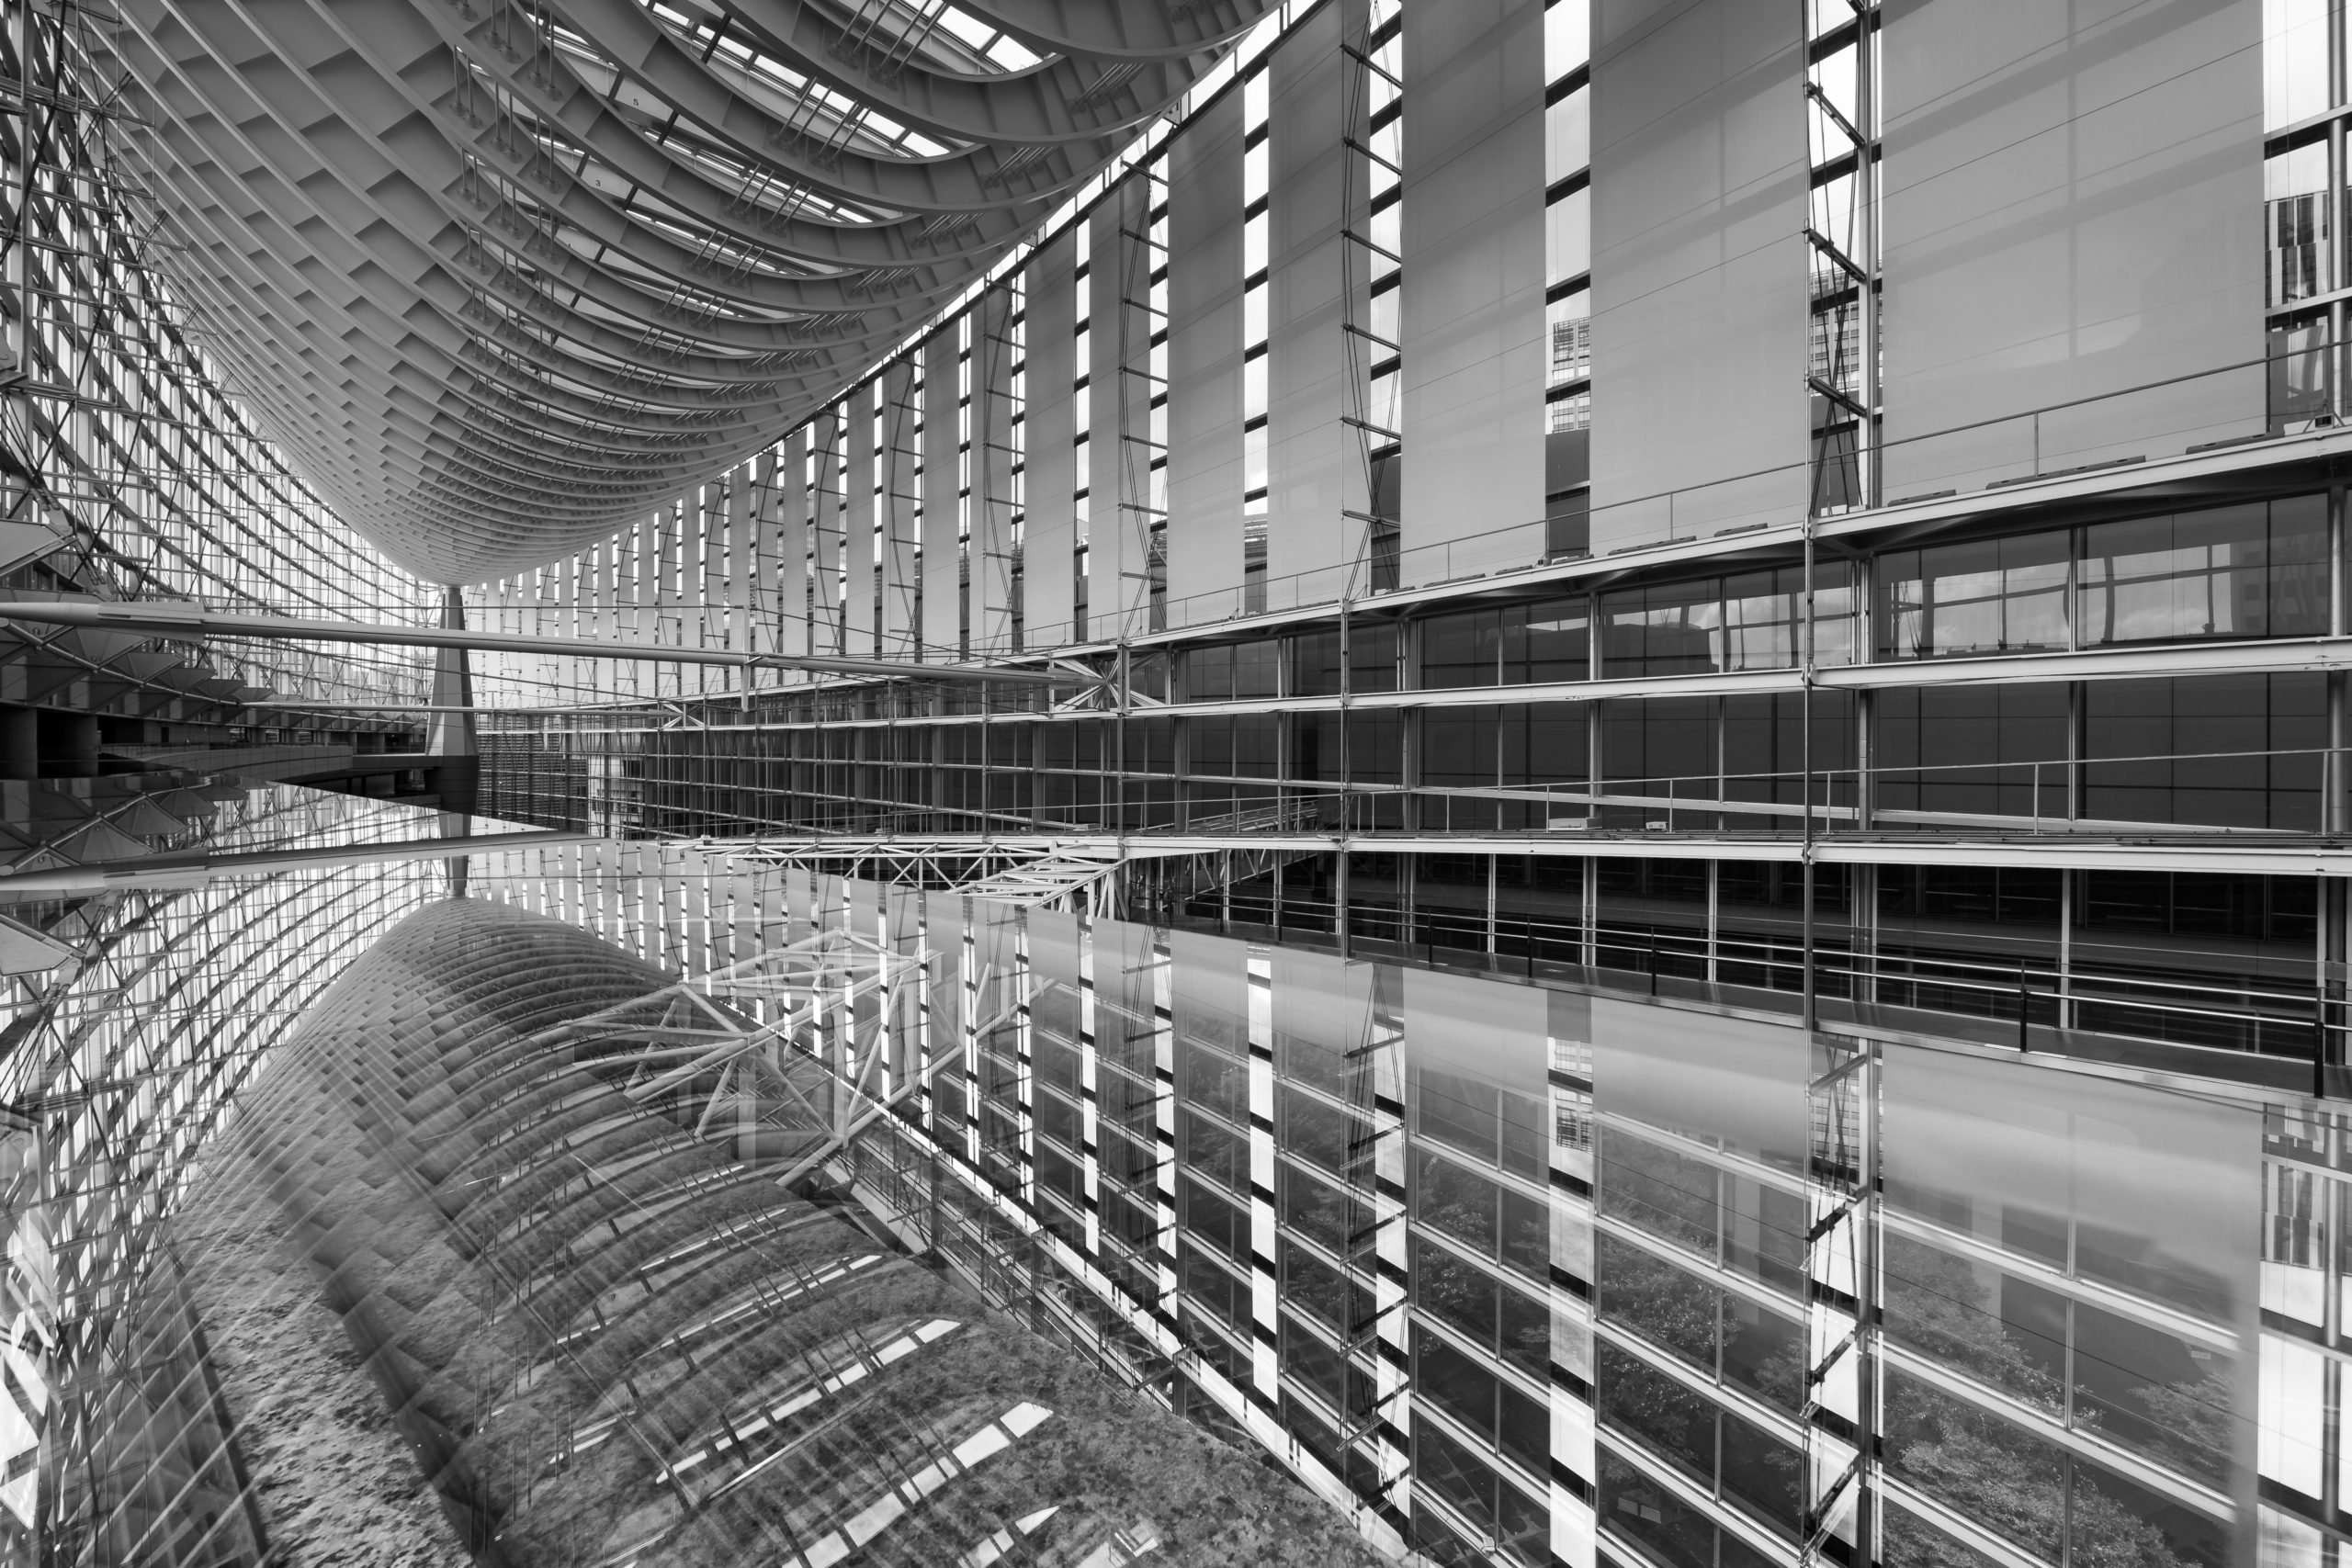 Reflection of Tokyo International Forum